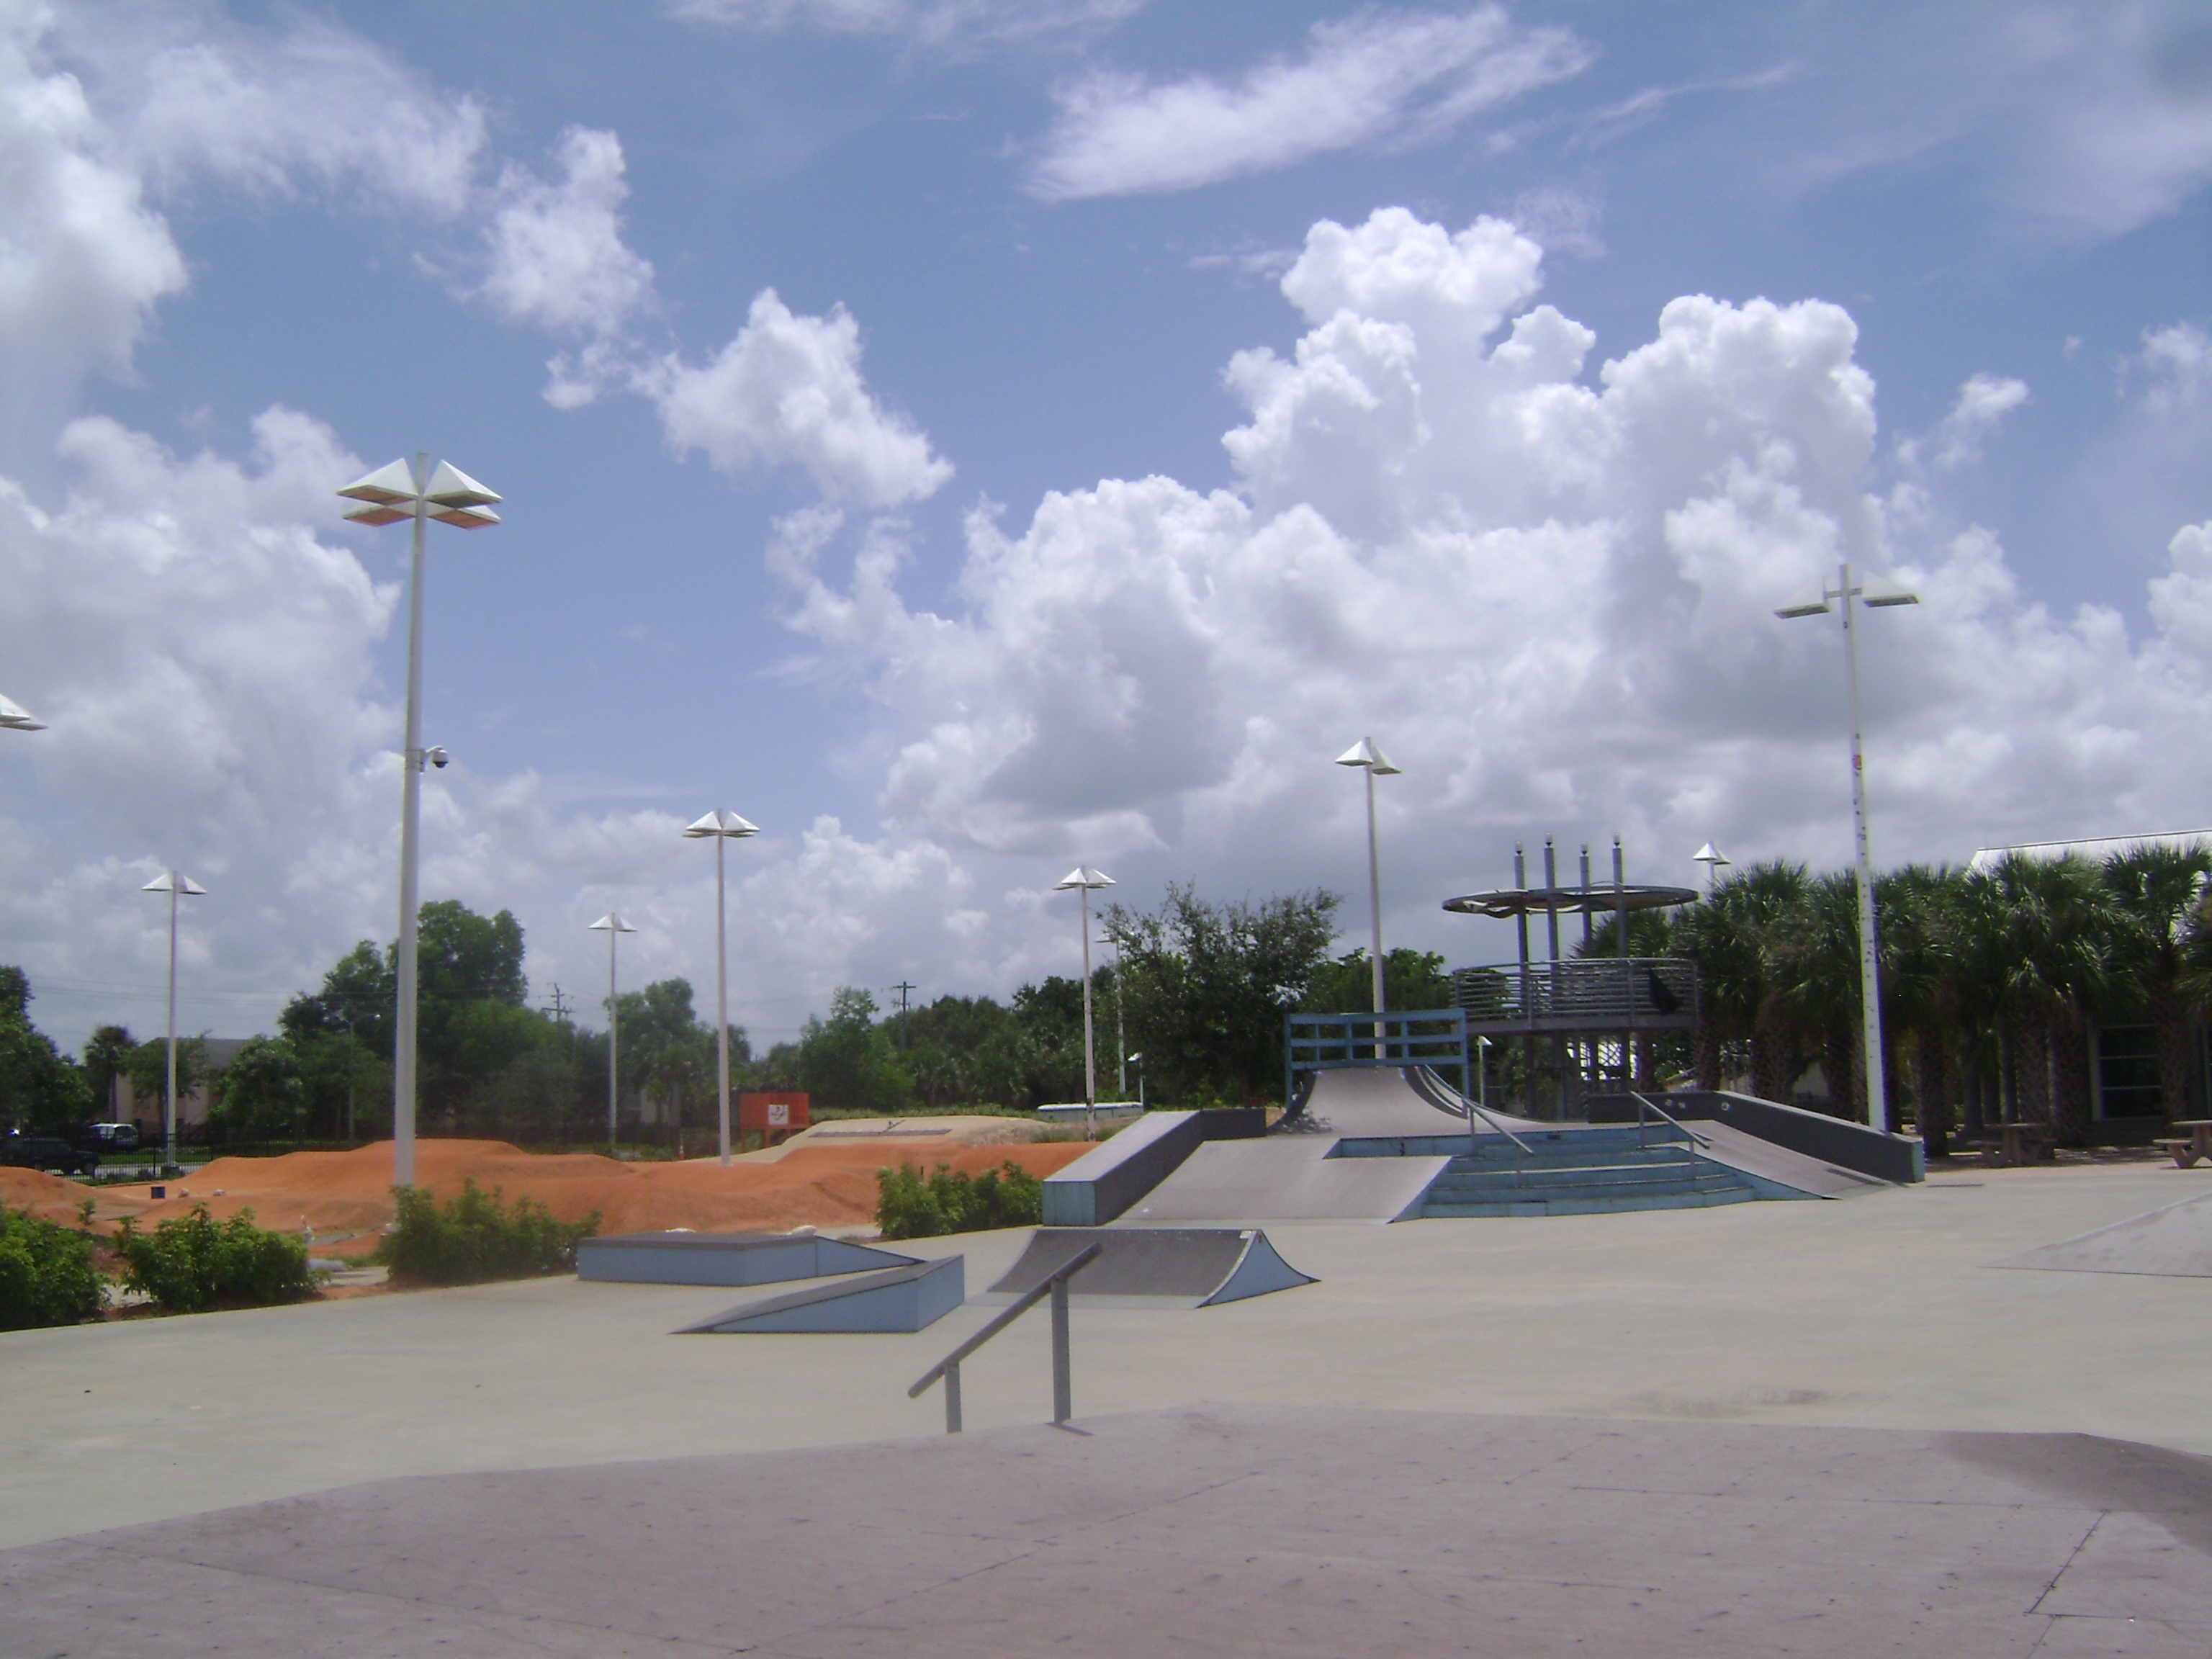 Skate park at Golden Gate City in Naples, Florida.